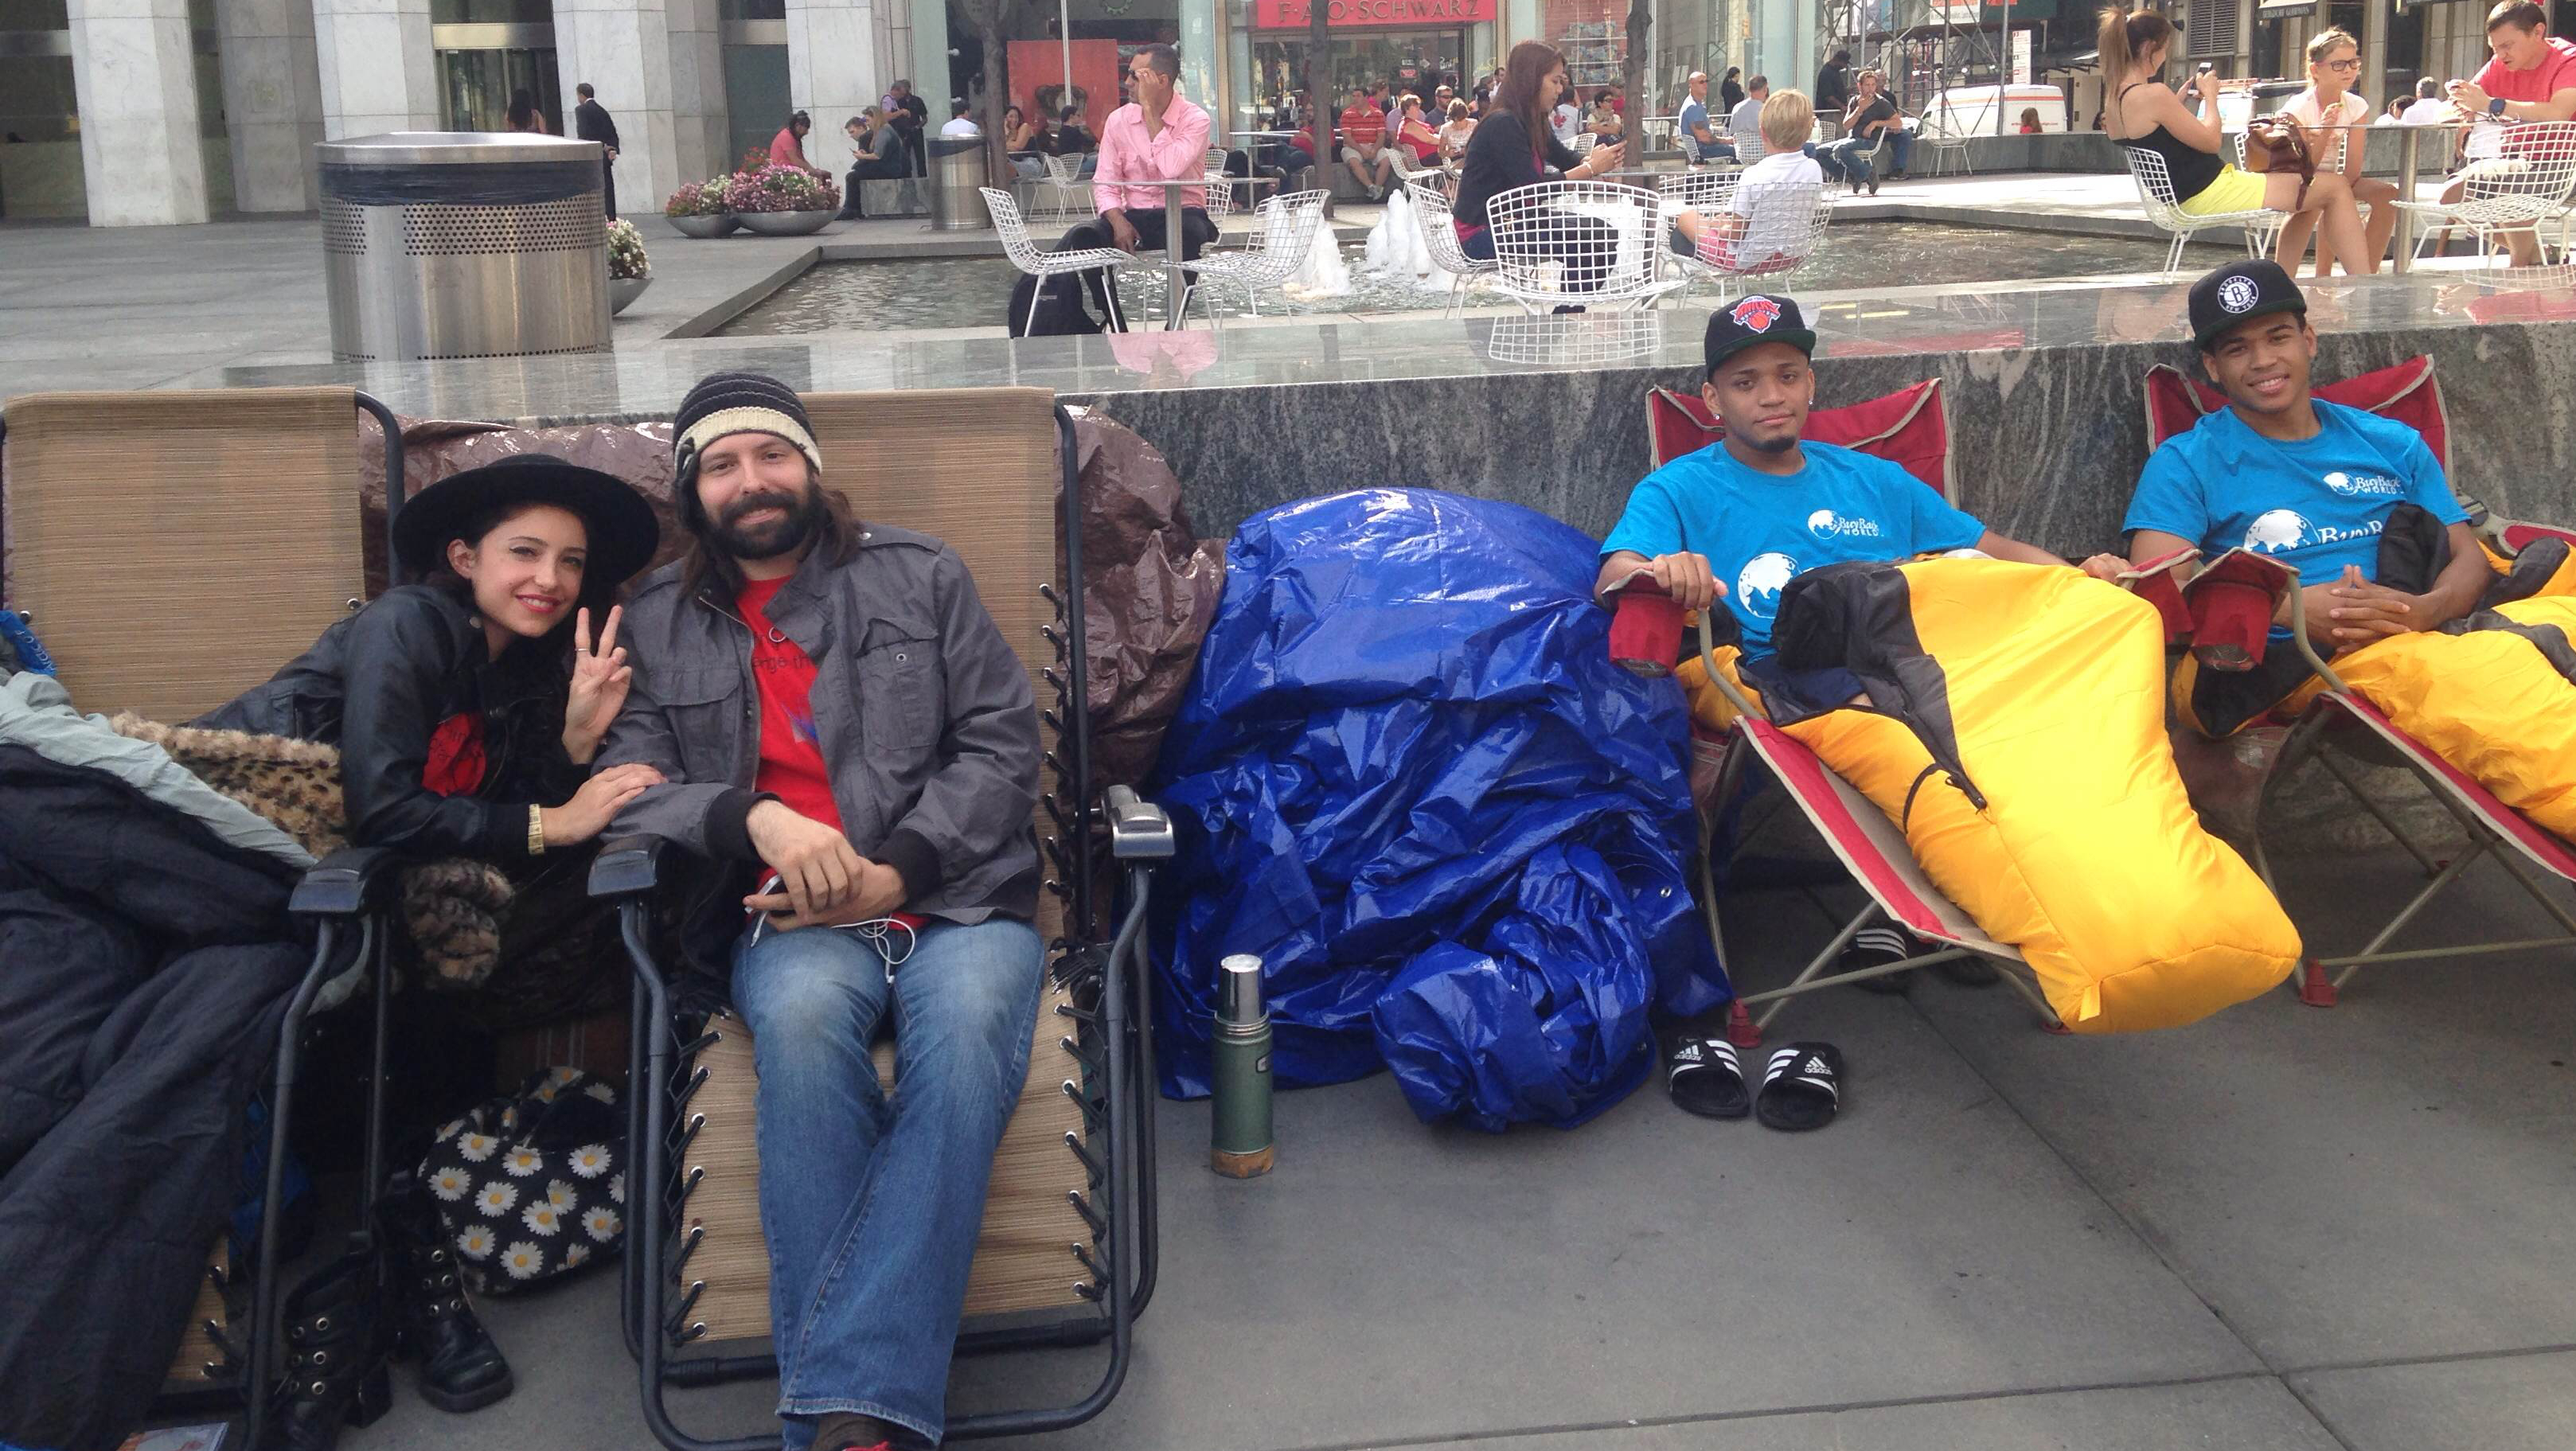 Apple store campers